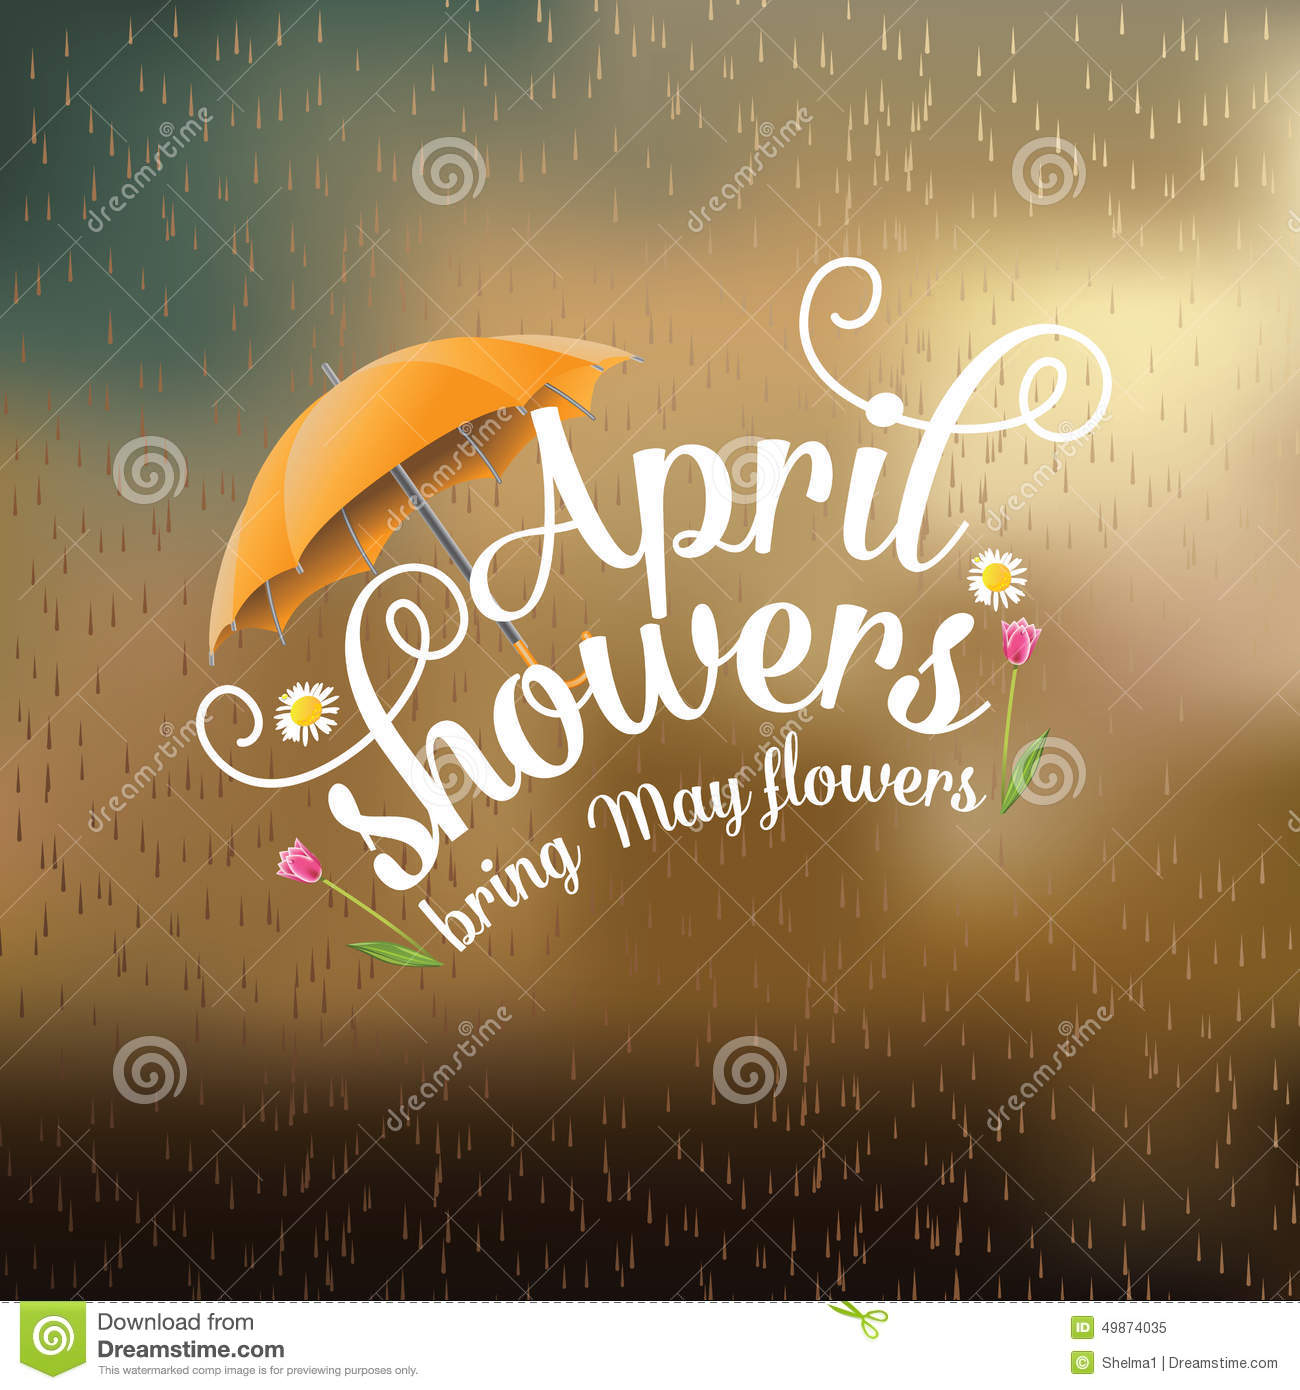 April Showers Bring May Flowers Spring Chalkboard: April Showers Bring May Flowers Design Stock Vector